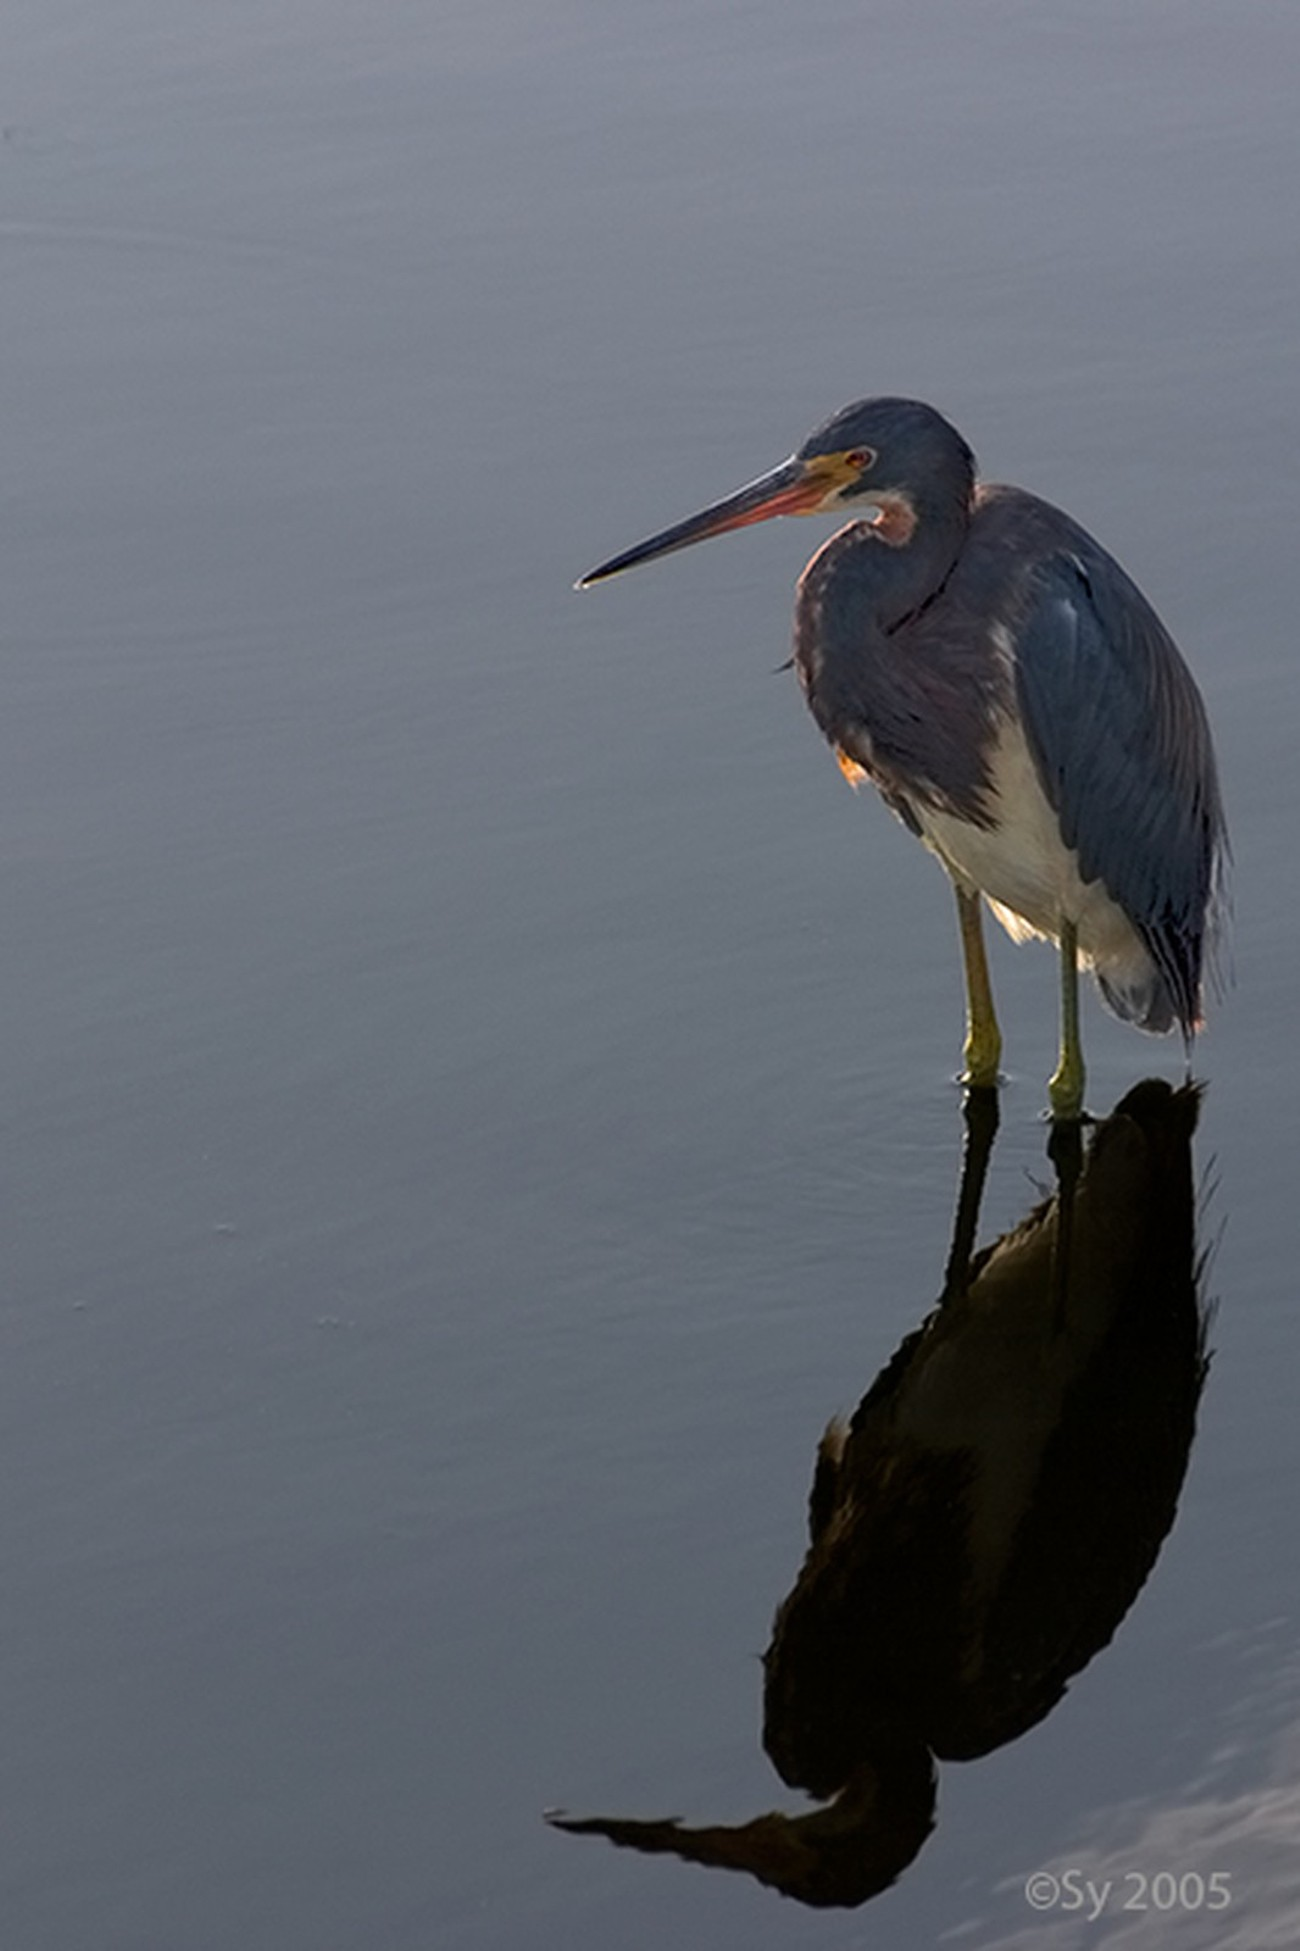 Louisiana heron and its reflexion in the water of a Florida lake.